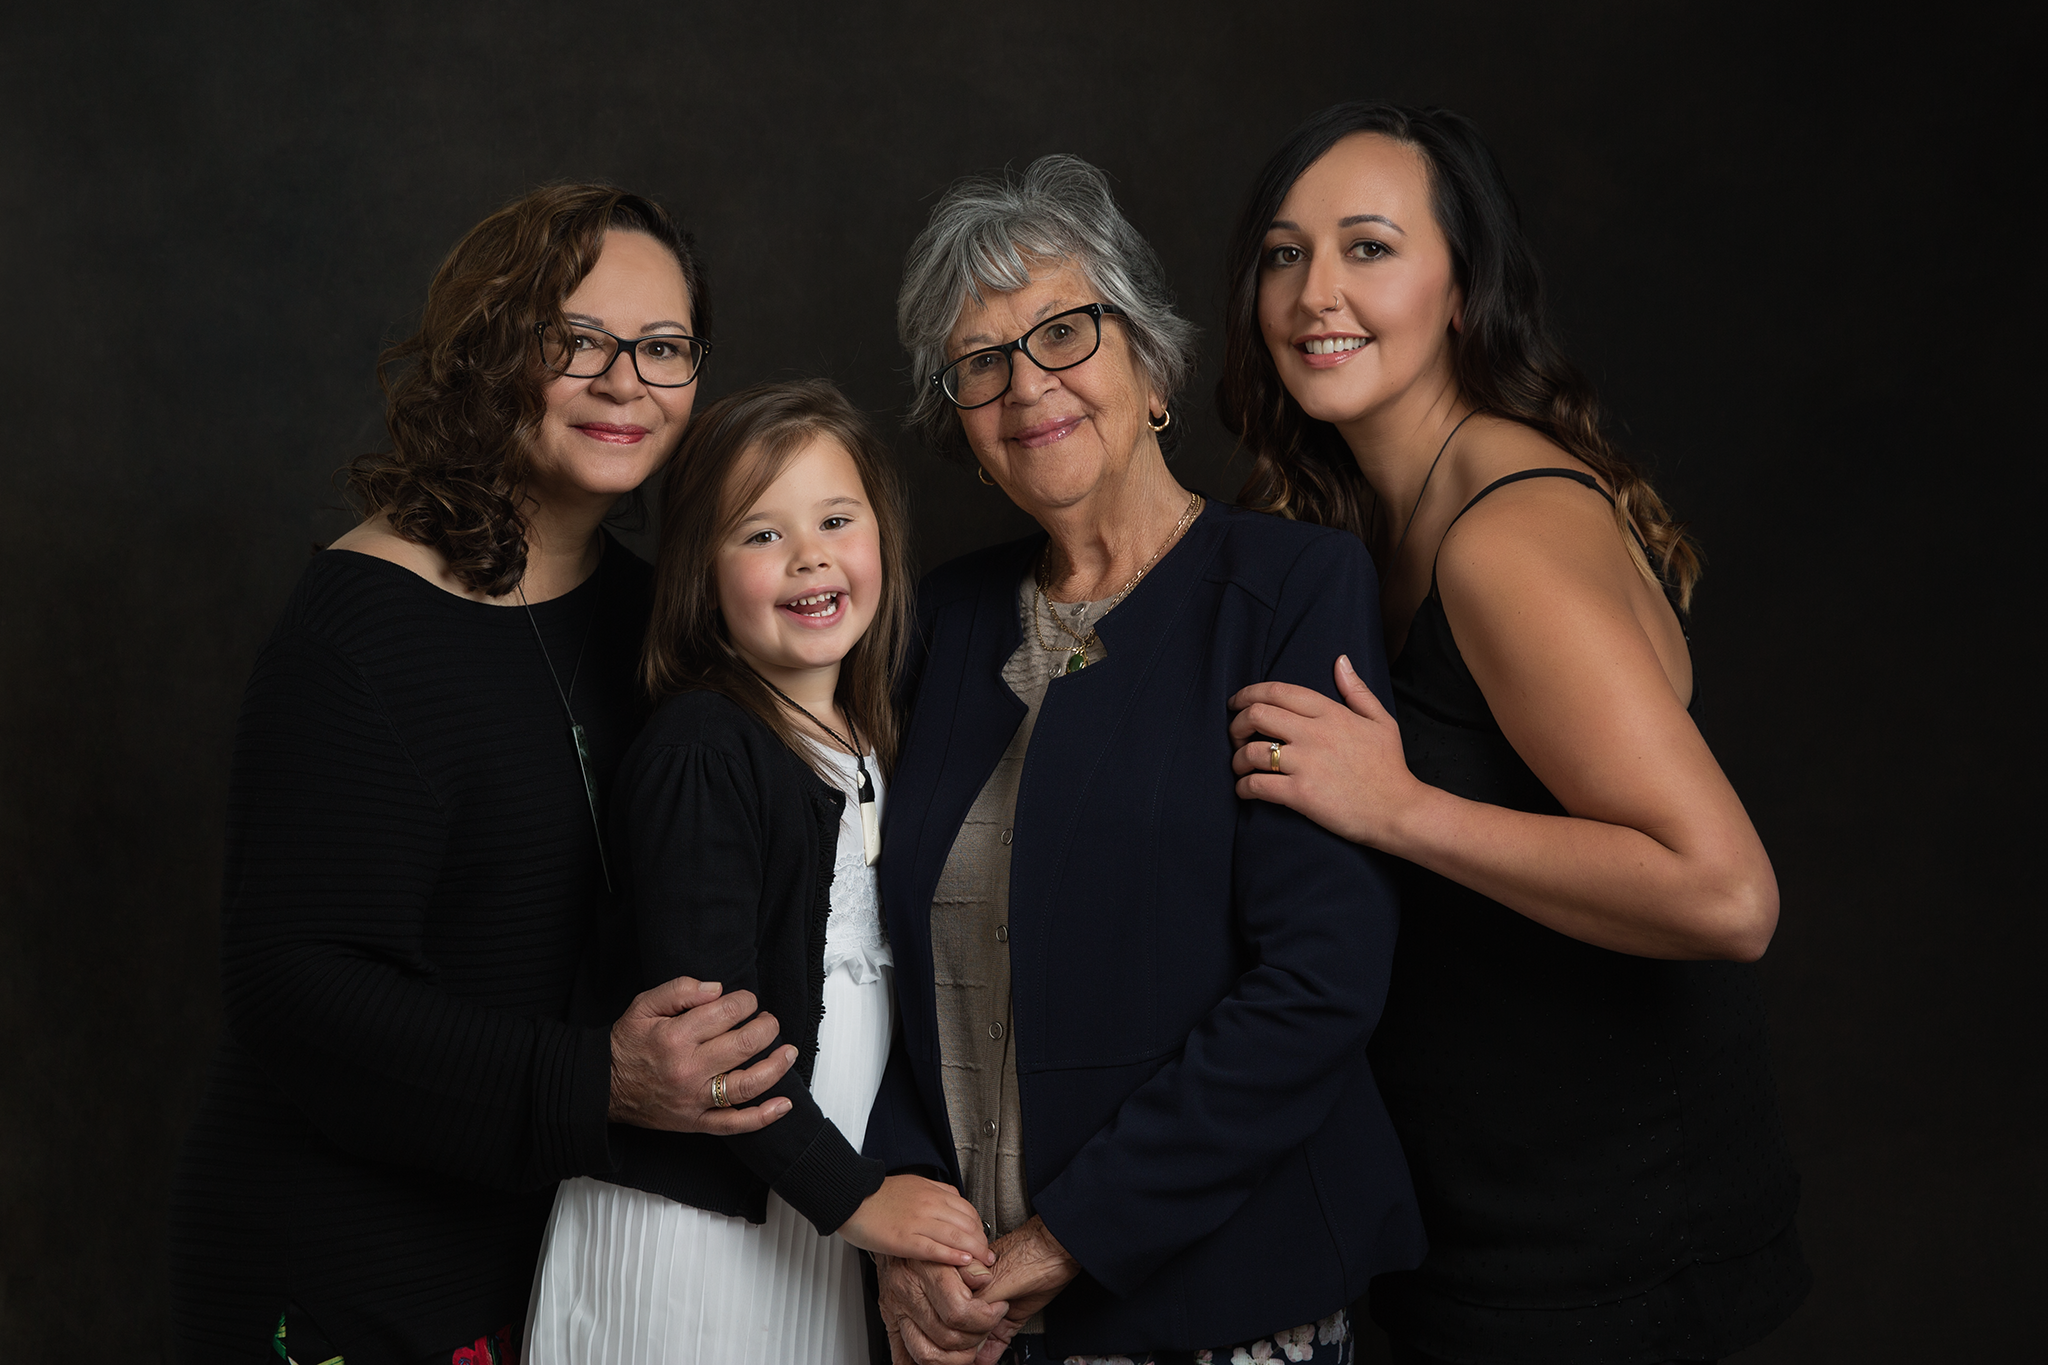 Tania Fernandes geelong photographer 4 generations.png